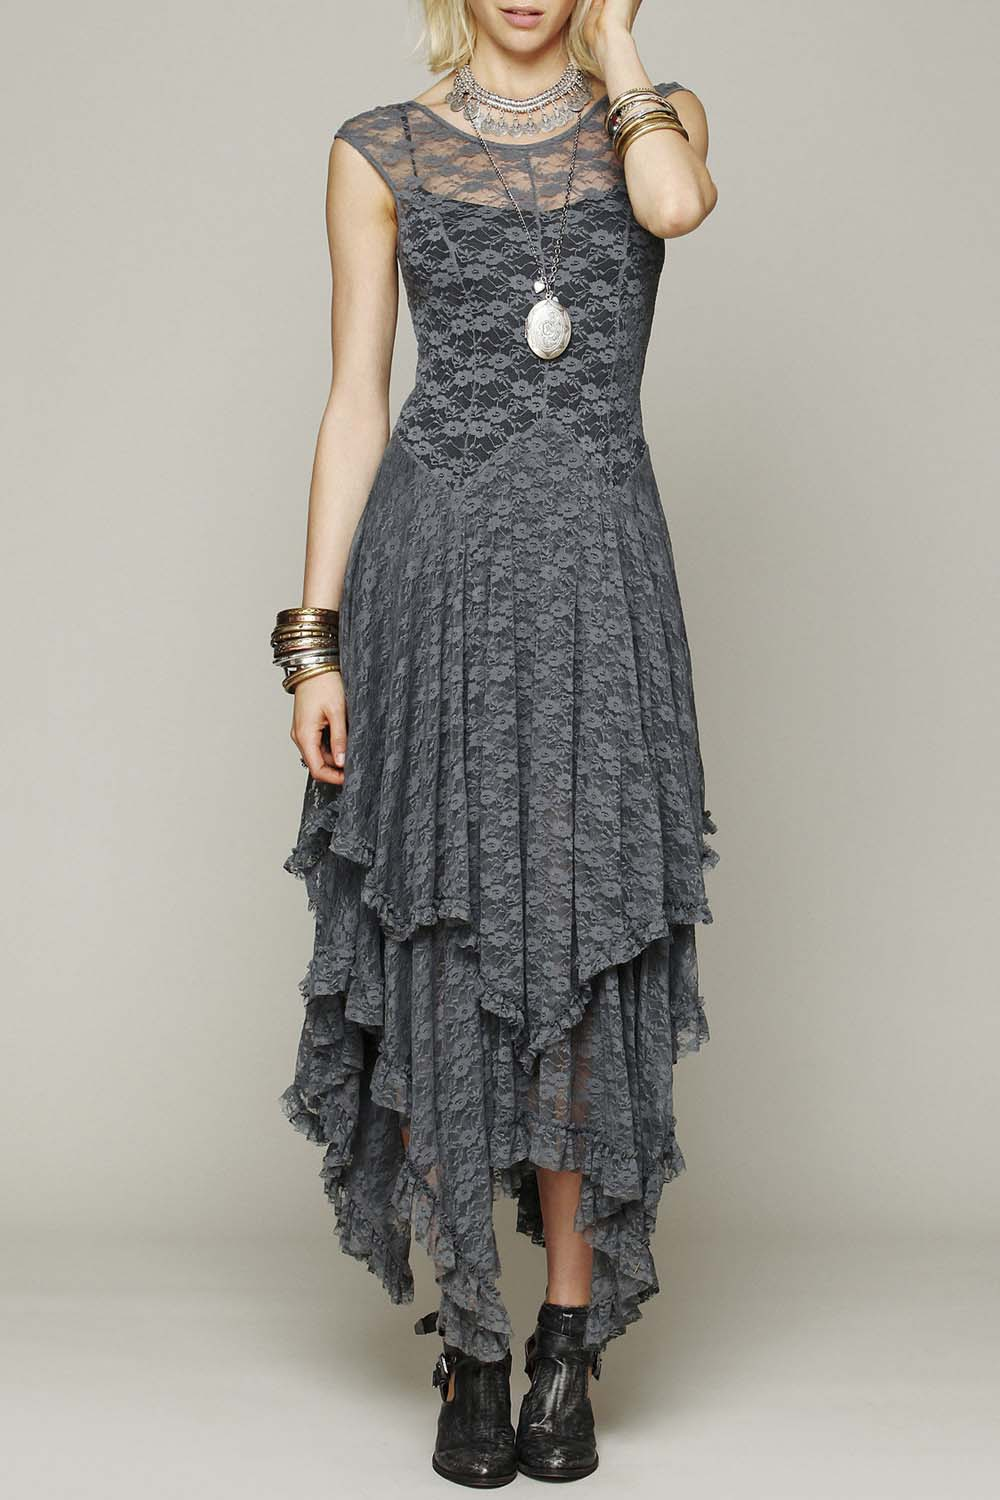 Women's Sexy Sleeveless Floral Lace Tiered Long Irregular Party Dress, Gray